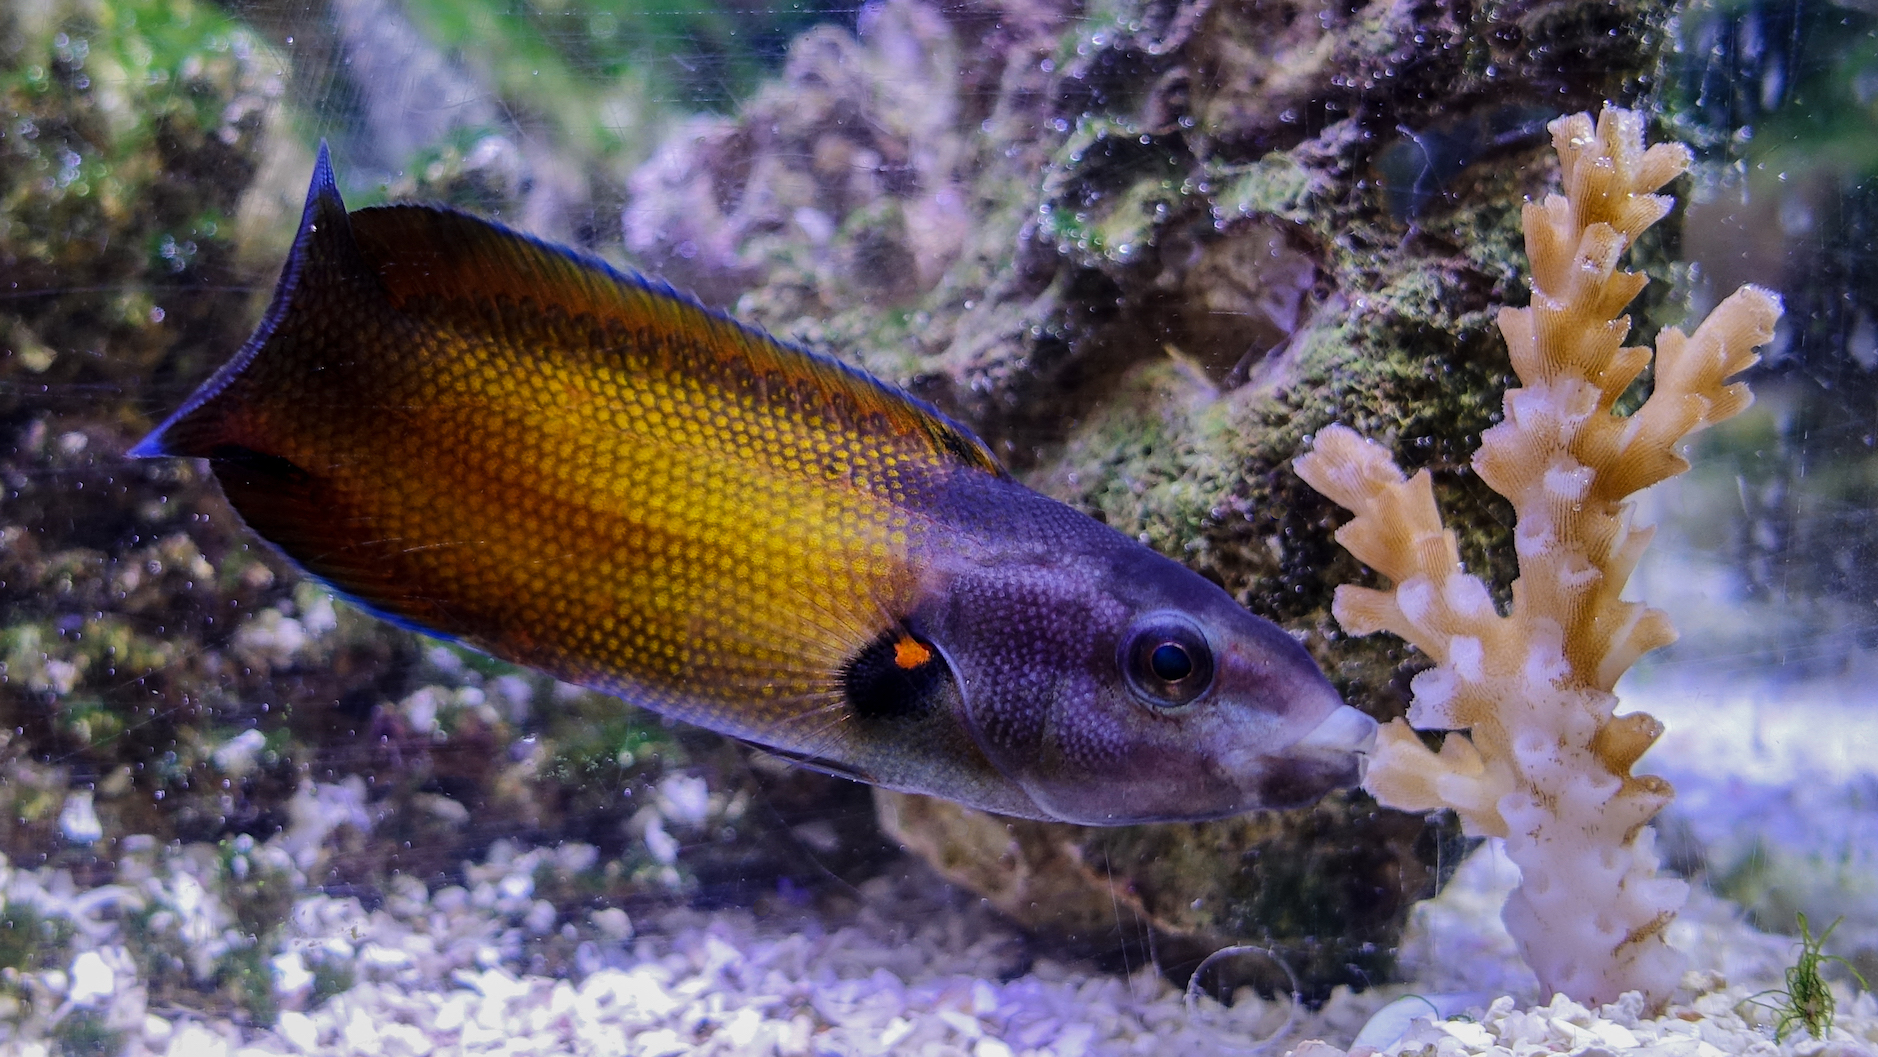 Researchers have recently discovered the difference that allows the tubelip wrasse to be one of the few species that dine on corals.